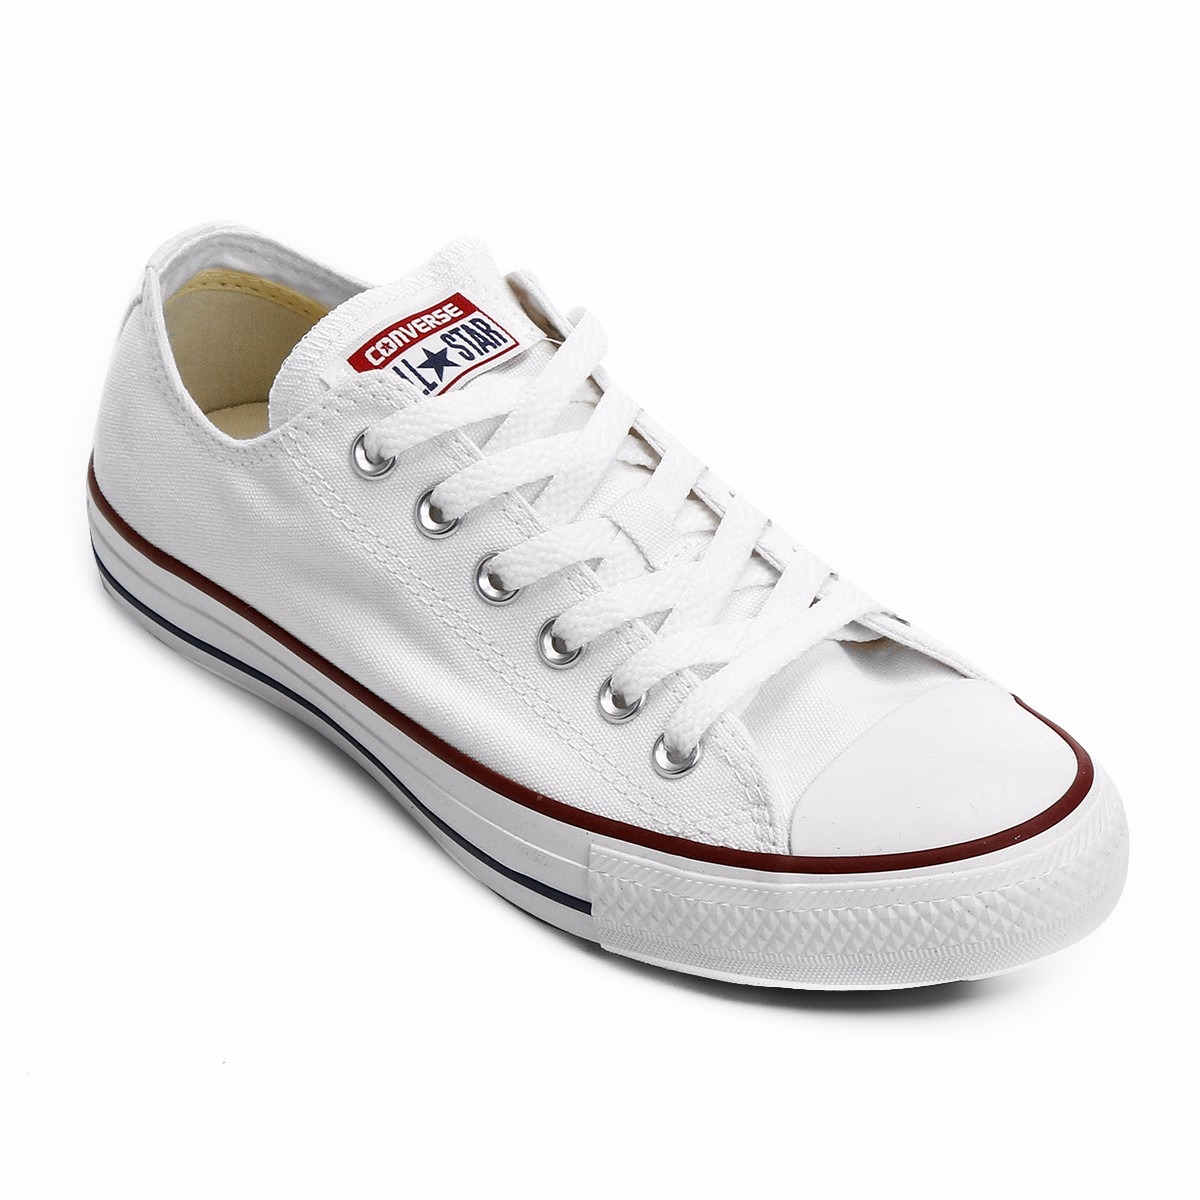 b783de99bf1 all star converse unissex original. Carregando zoom.